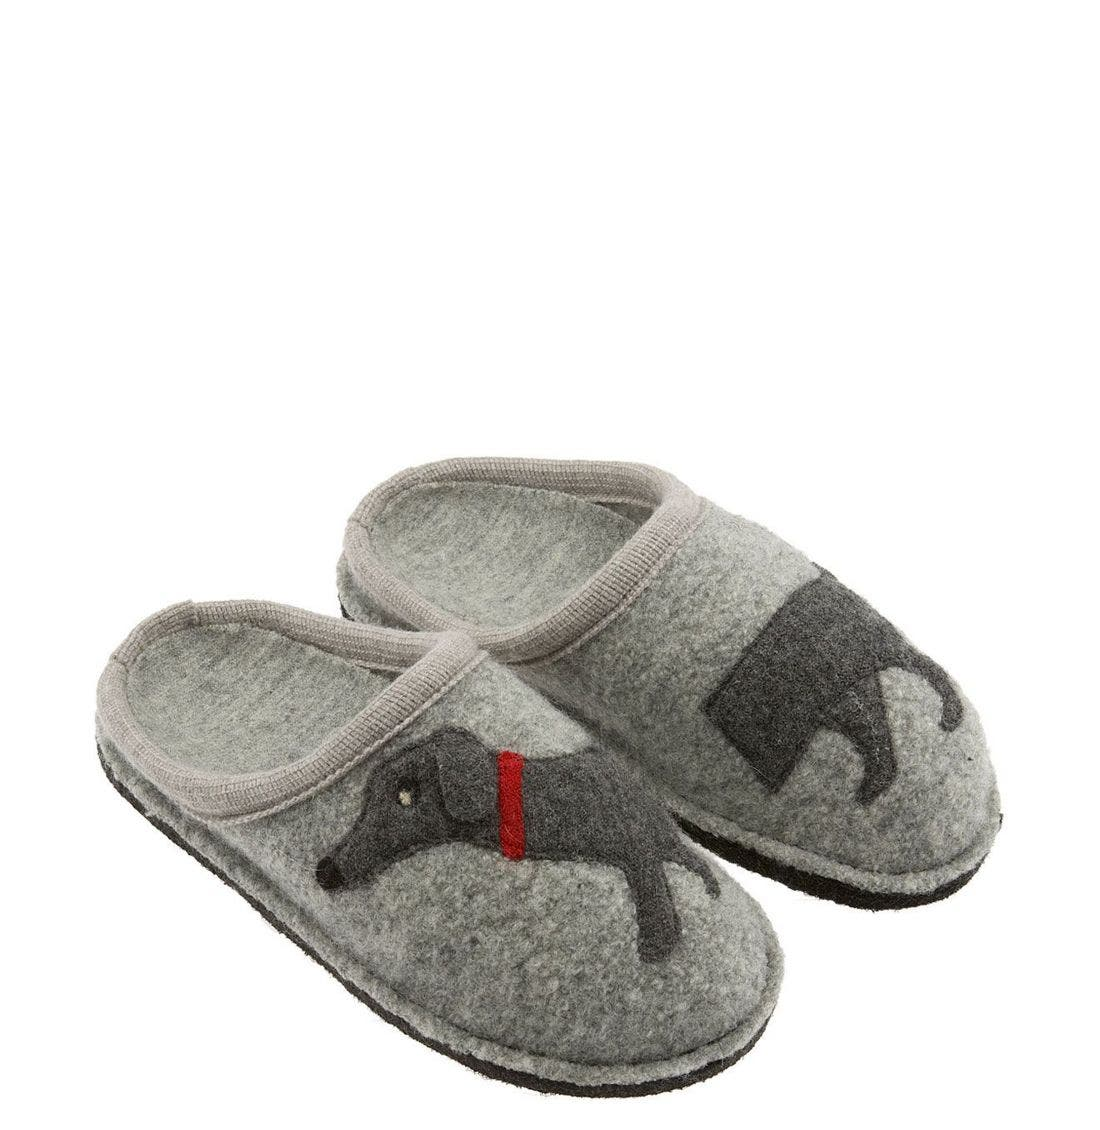 'Doggy' Slipper,                         Main,                         color, Grey